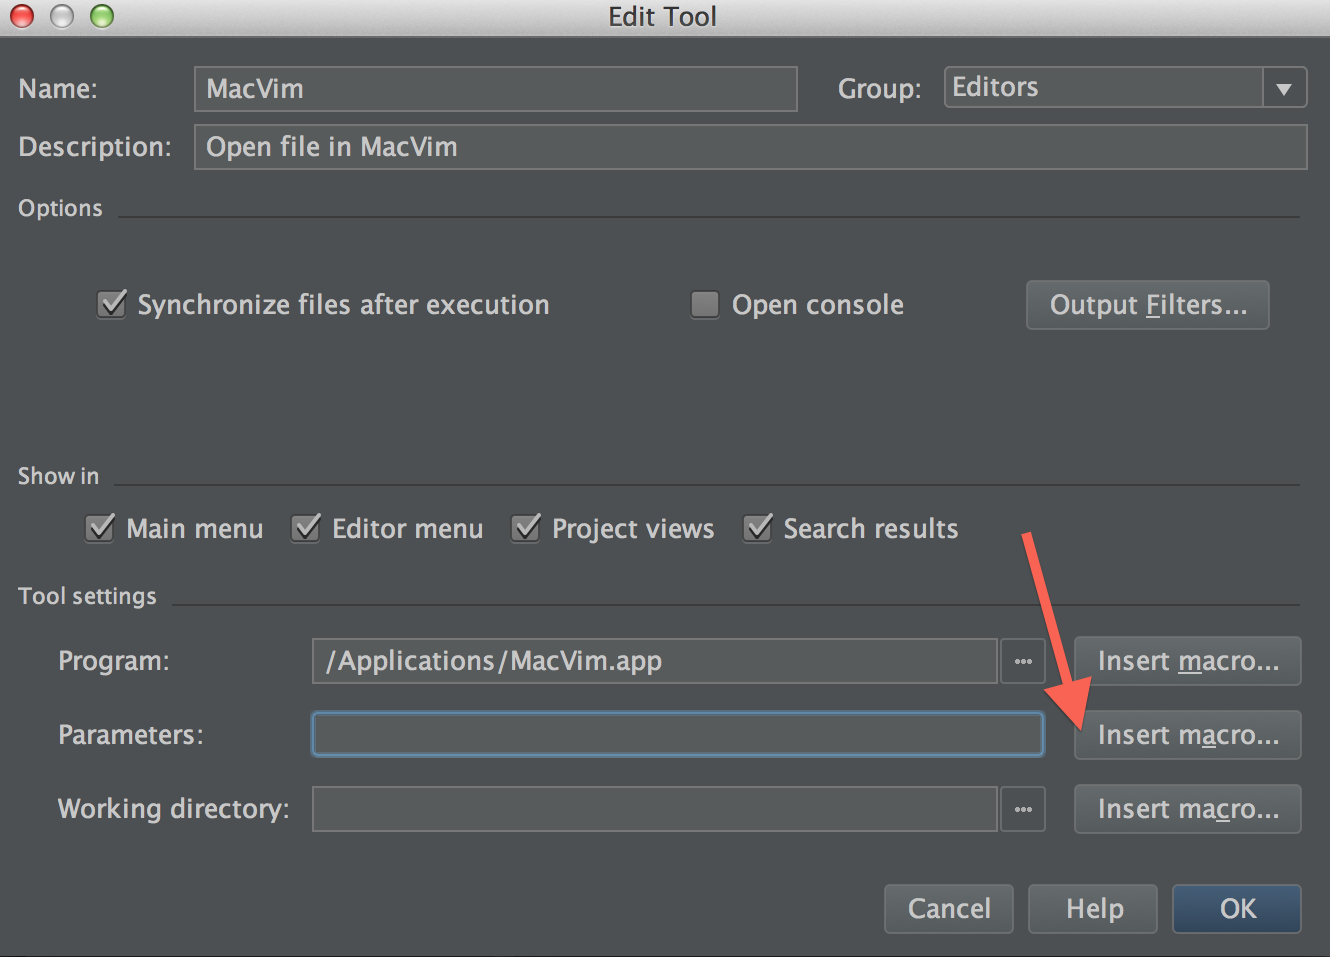 Clicking on insert macro for the parameters setting of an external tool in PyCharm